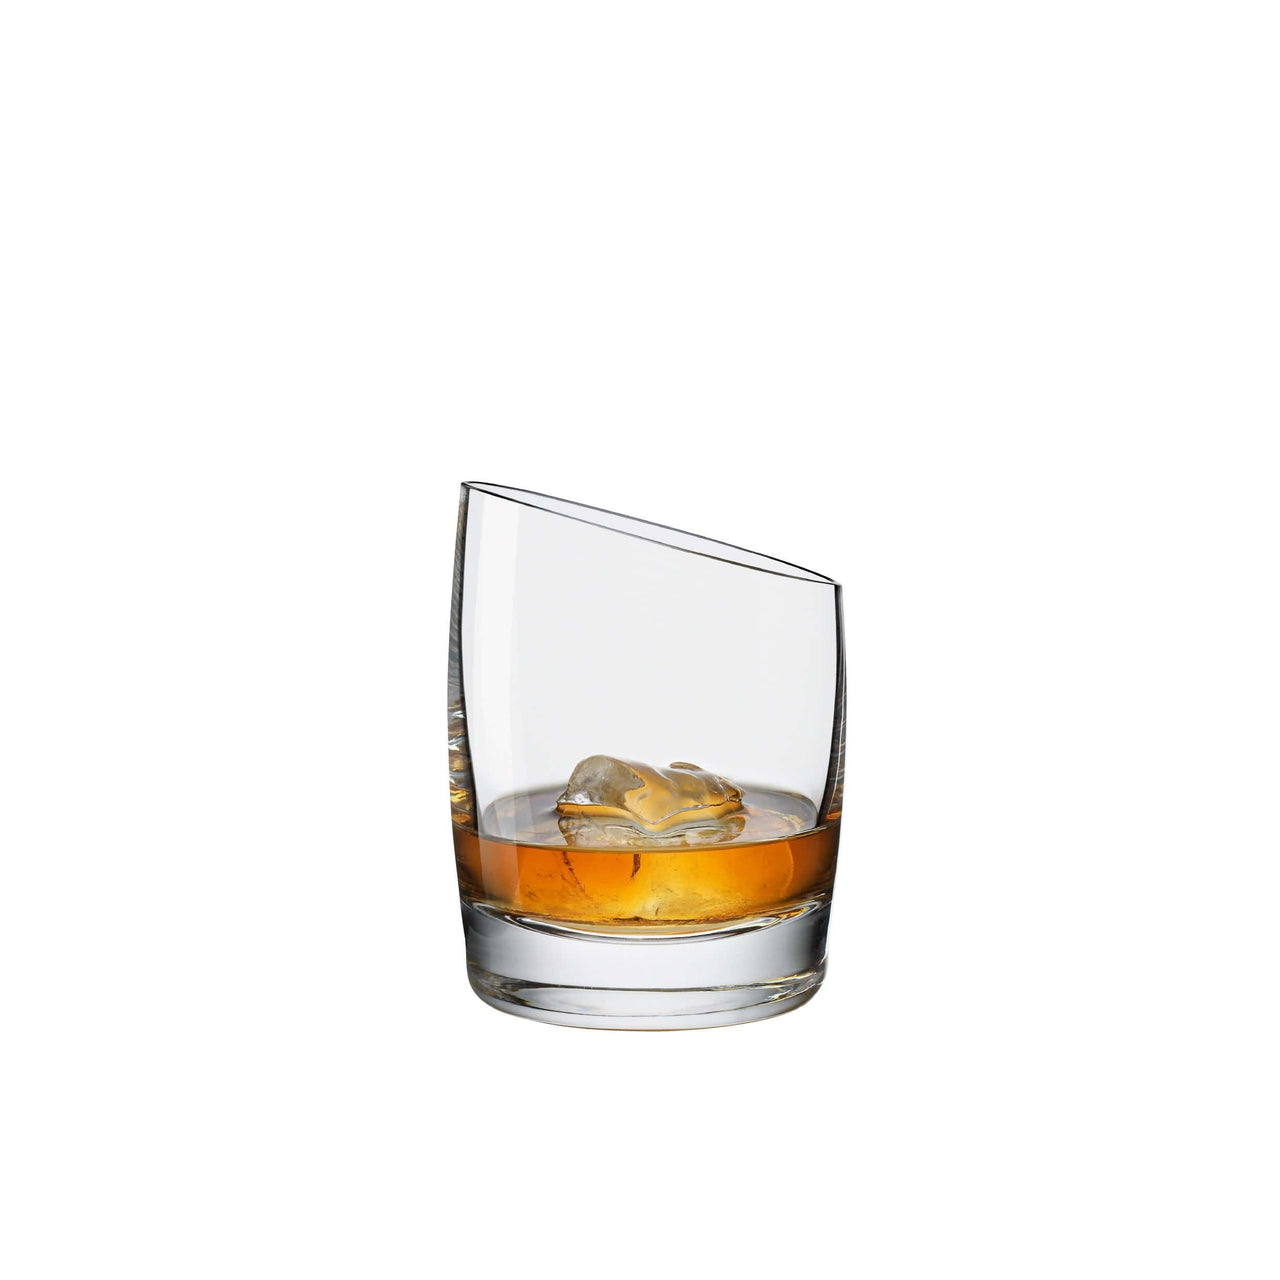 Eva Solo Drinkware Angled Rim Whiskey Glasses